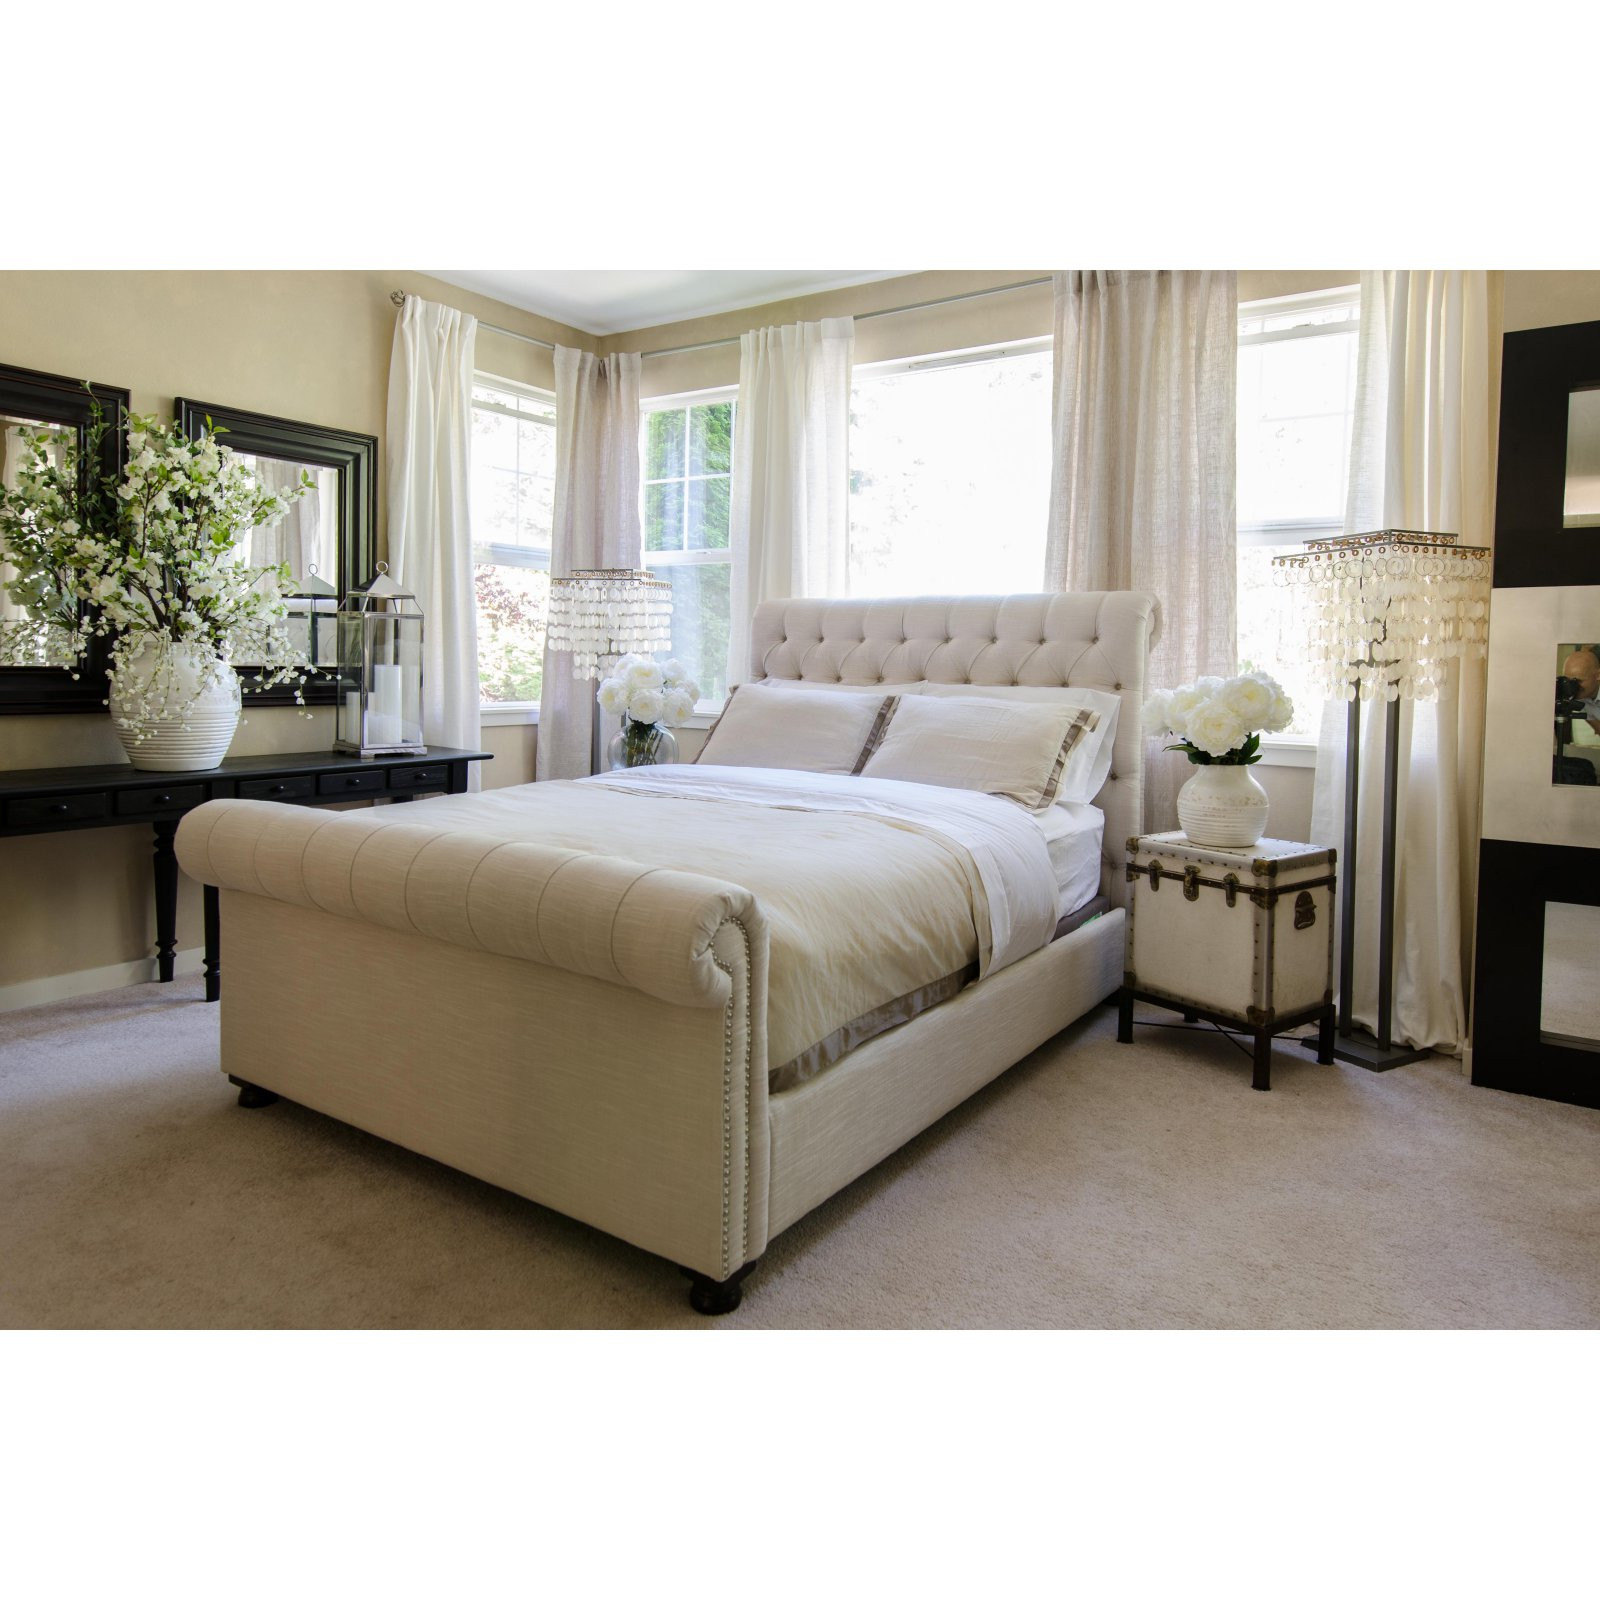 Elements Fine Home Tribeca Upholstered Sleigh Bed by Elements Fine Home Furnishings